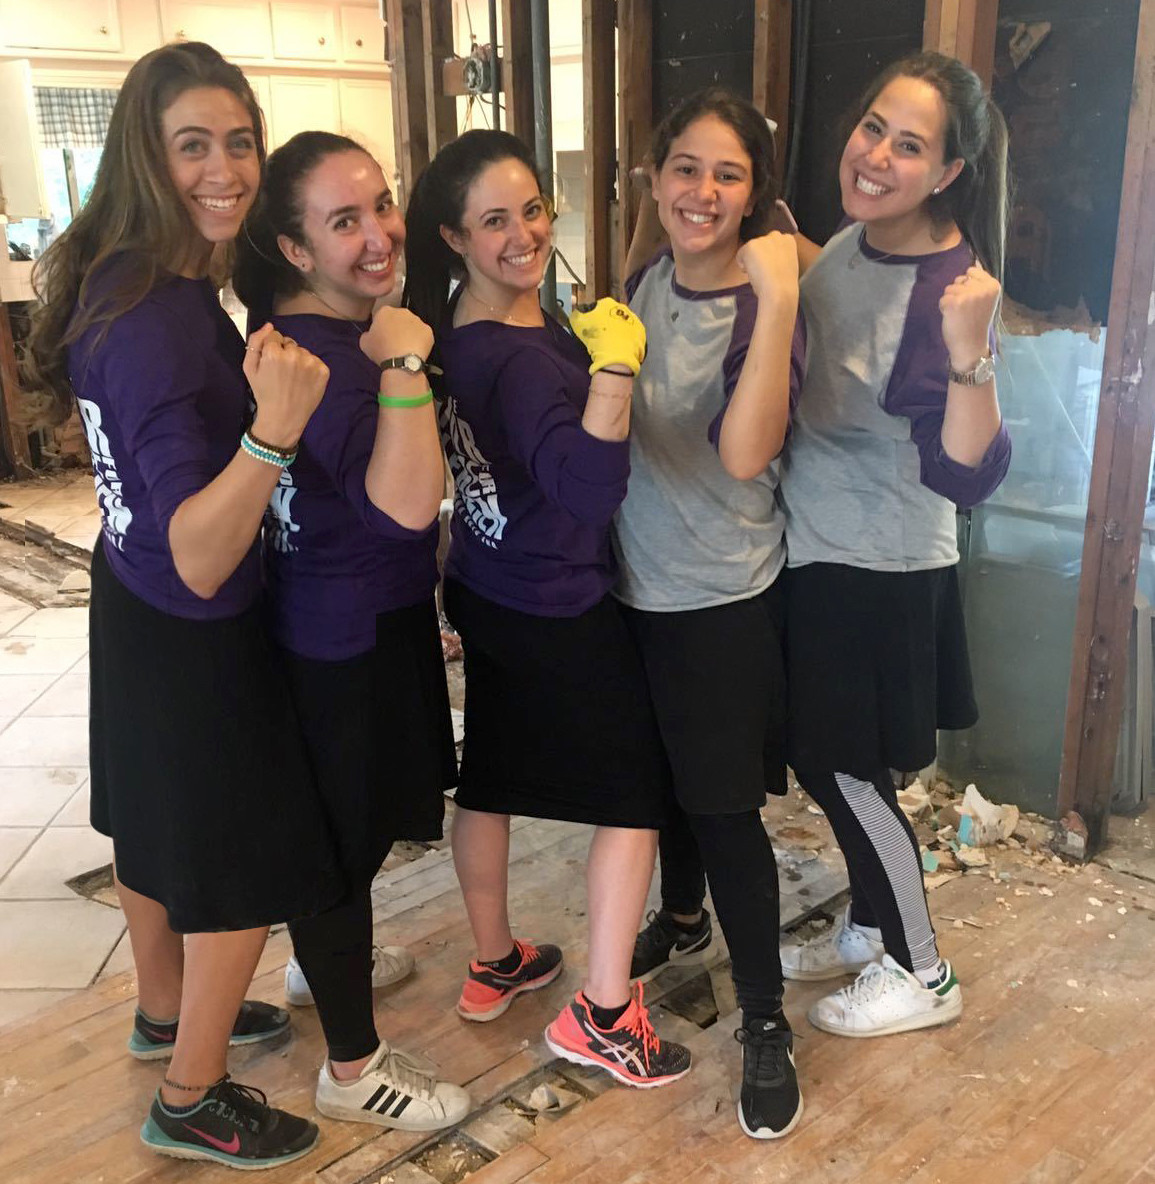 Touro women in Houston, from left: Chaviva Mandel, Hannah Levinson, Isabella Miller, Rebecca Ohayon, and Alissa Doctor.